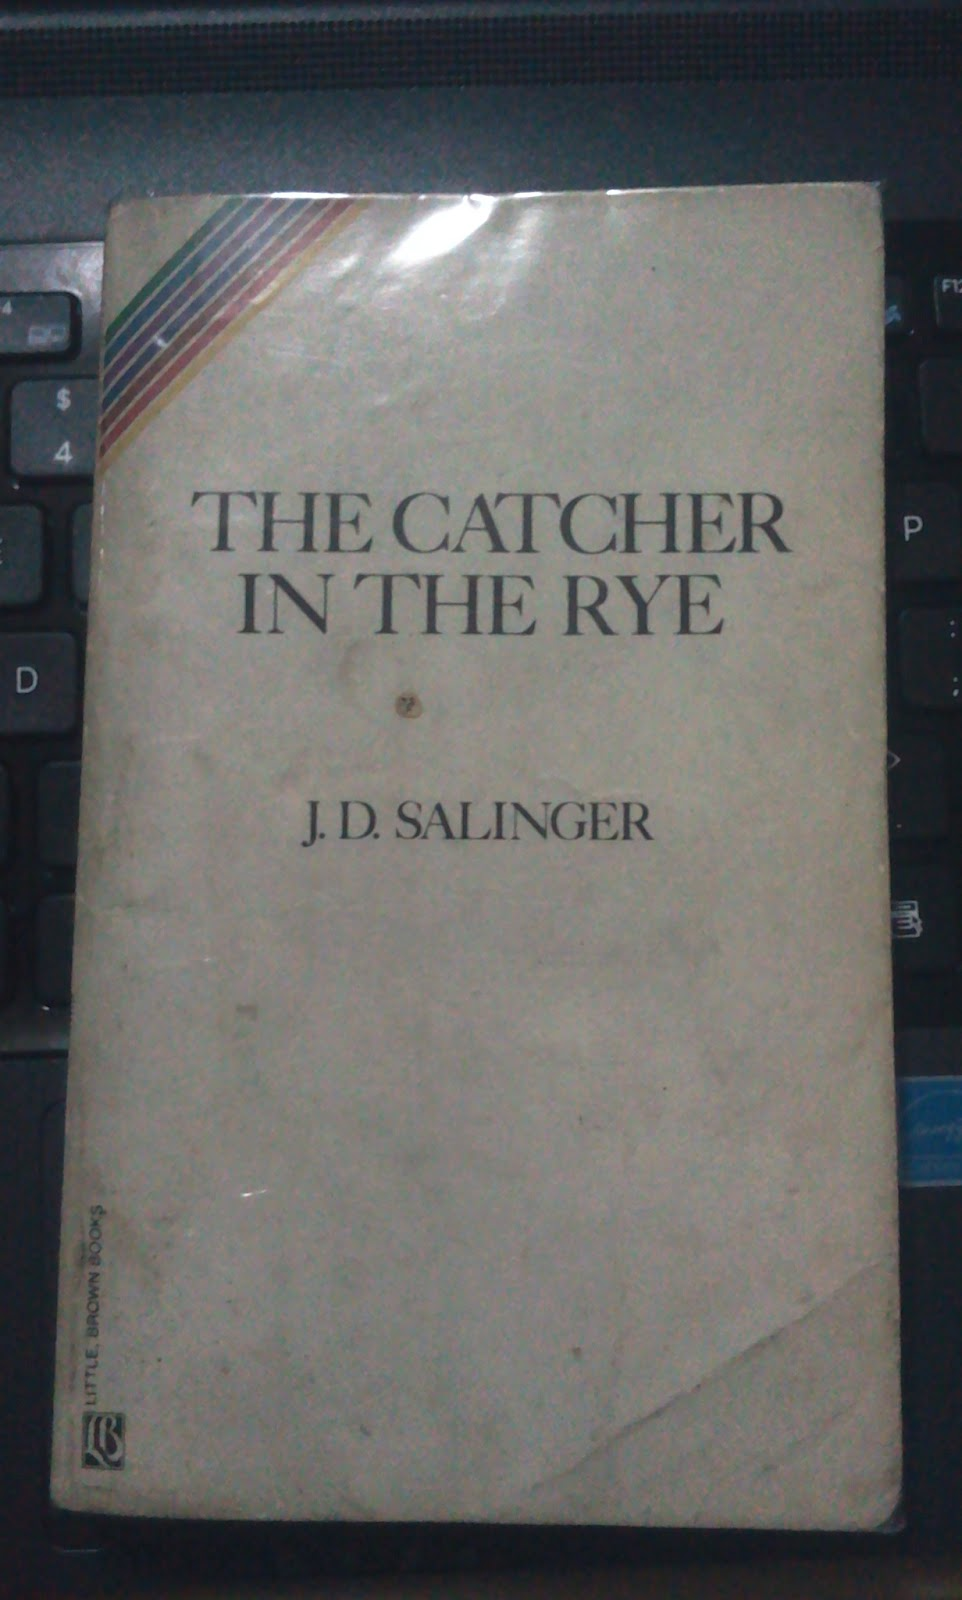 Documentary reveals how The Catcher In The Rye author JD Salinger was inspired